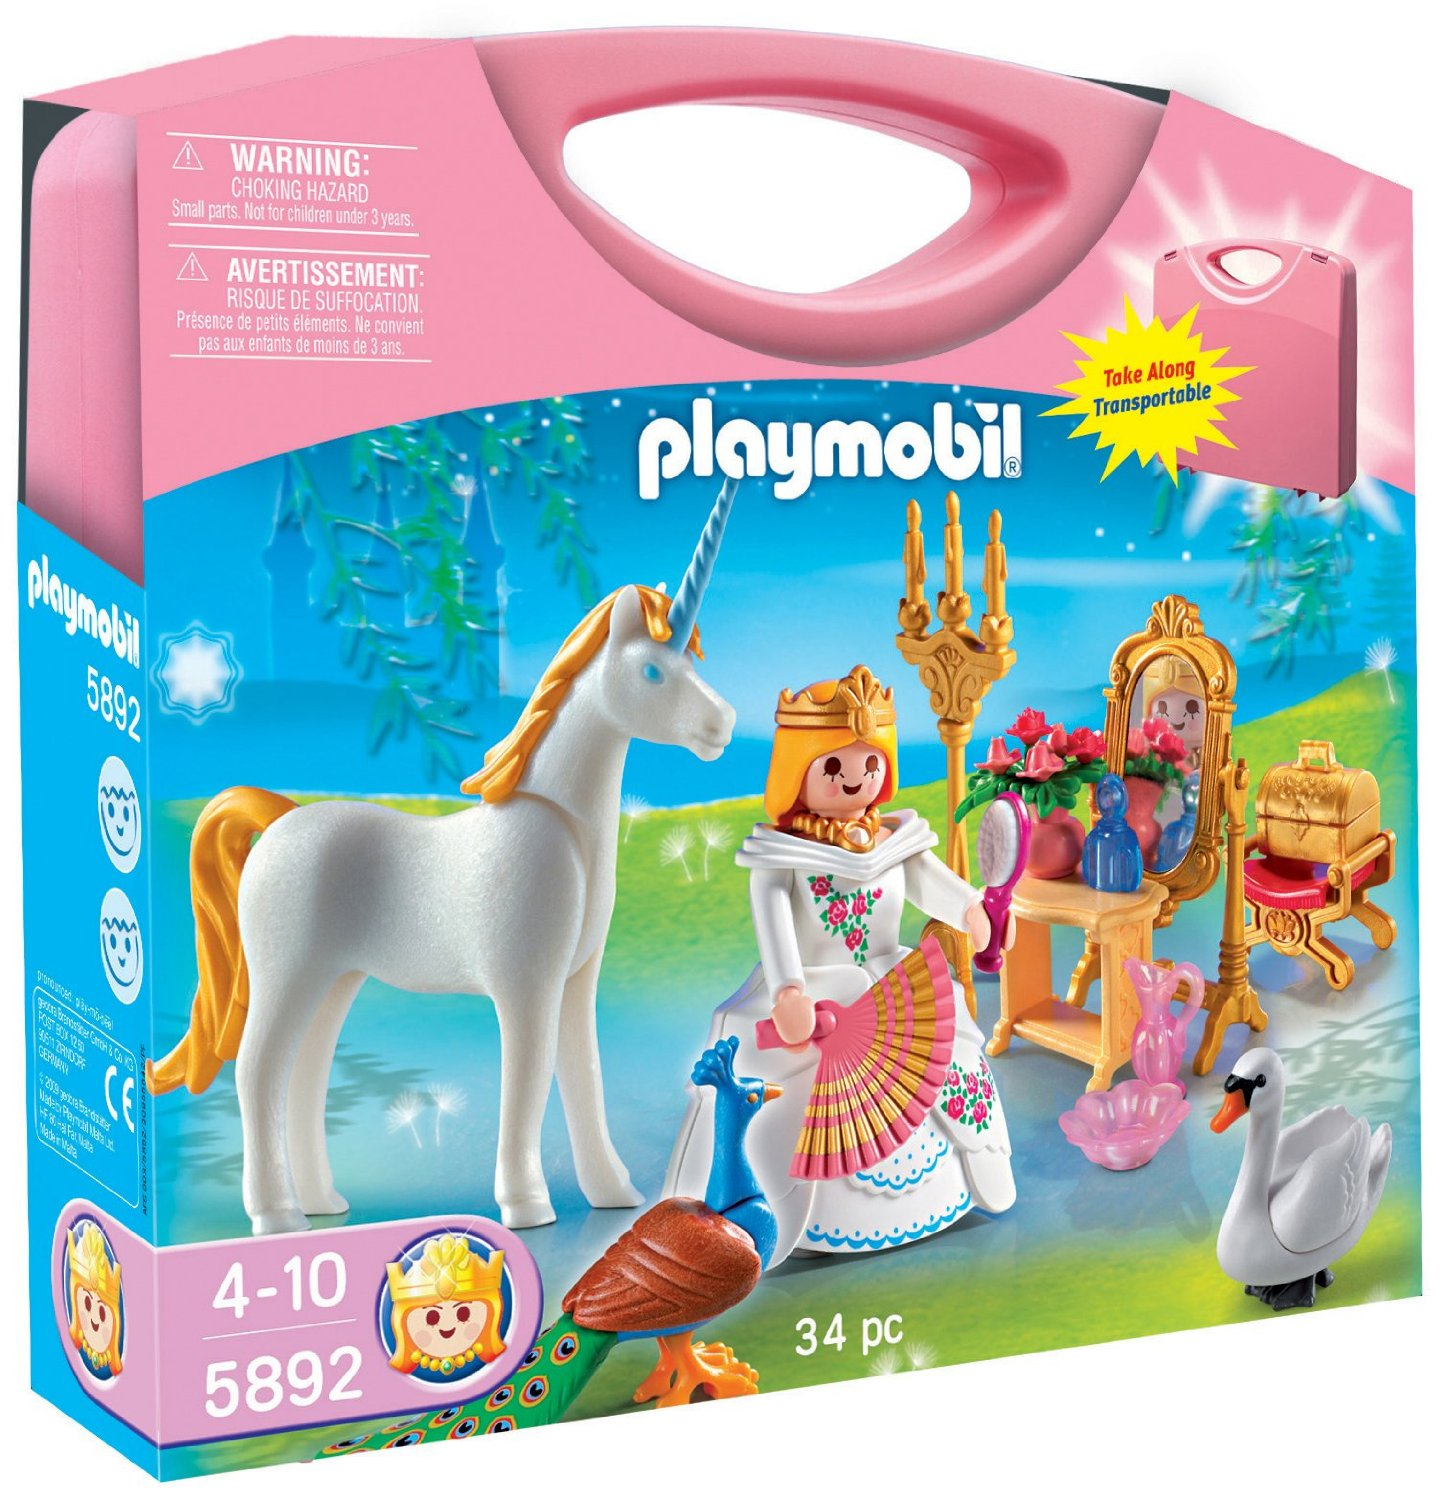 Playmobile Princess Carrying Case Playset